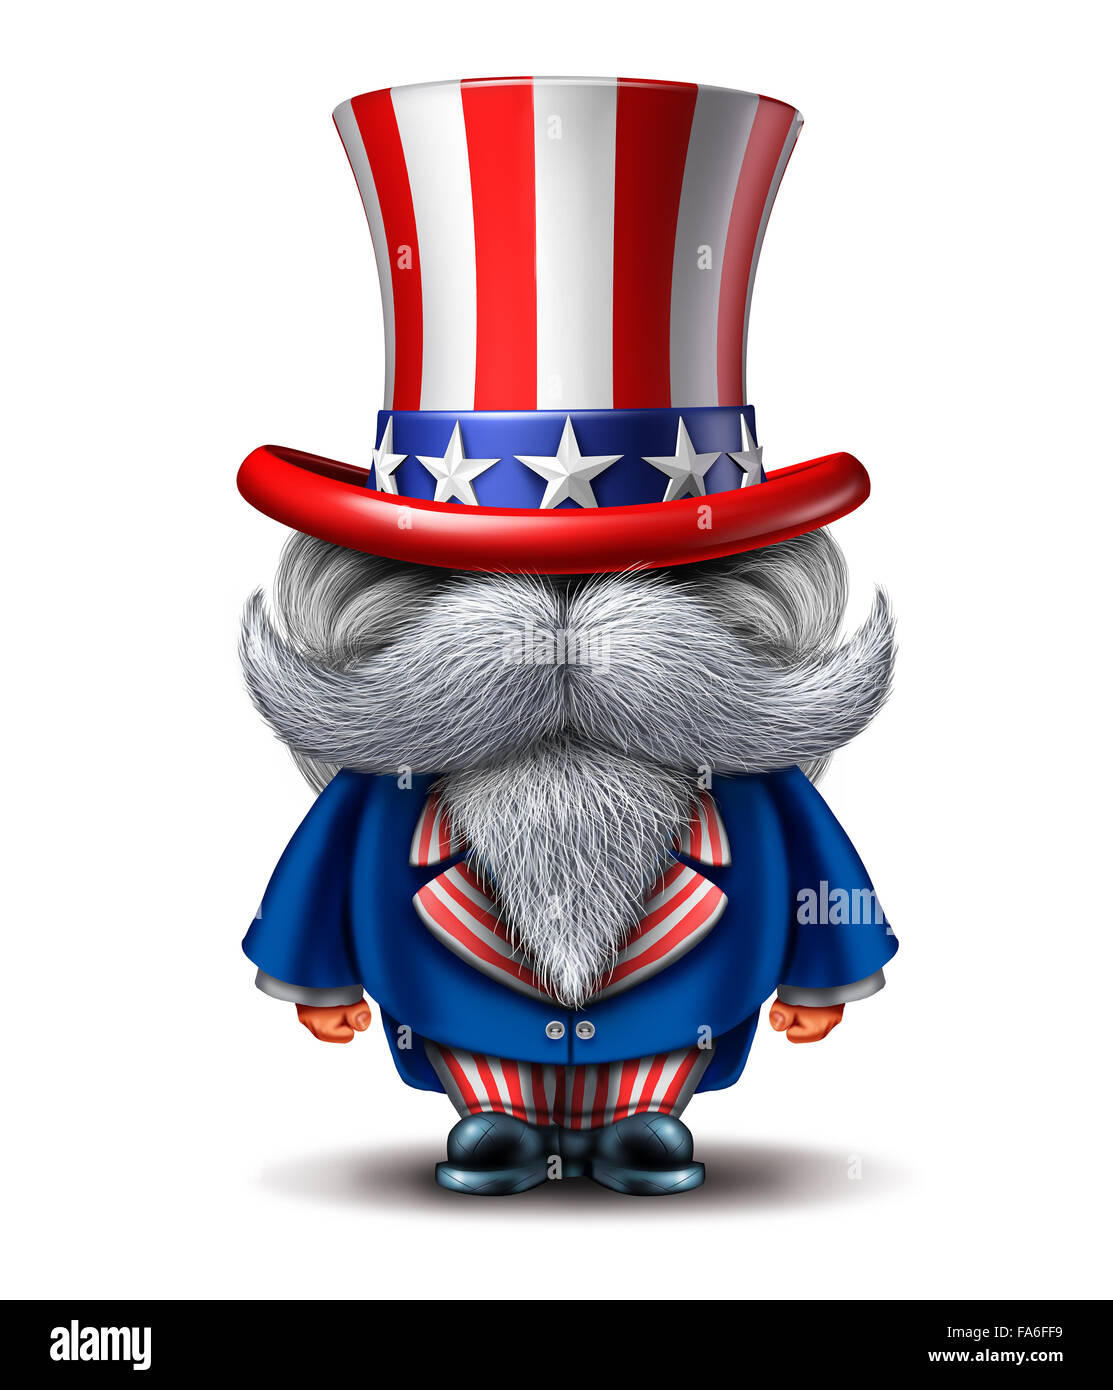 Uncle Sam character as a patriotic icon of an American symbol of political government elections or fourth of july - Stock Image